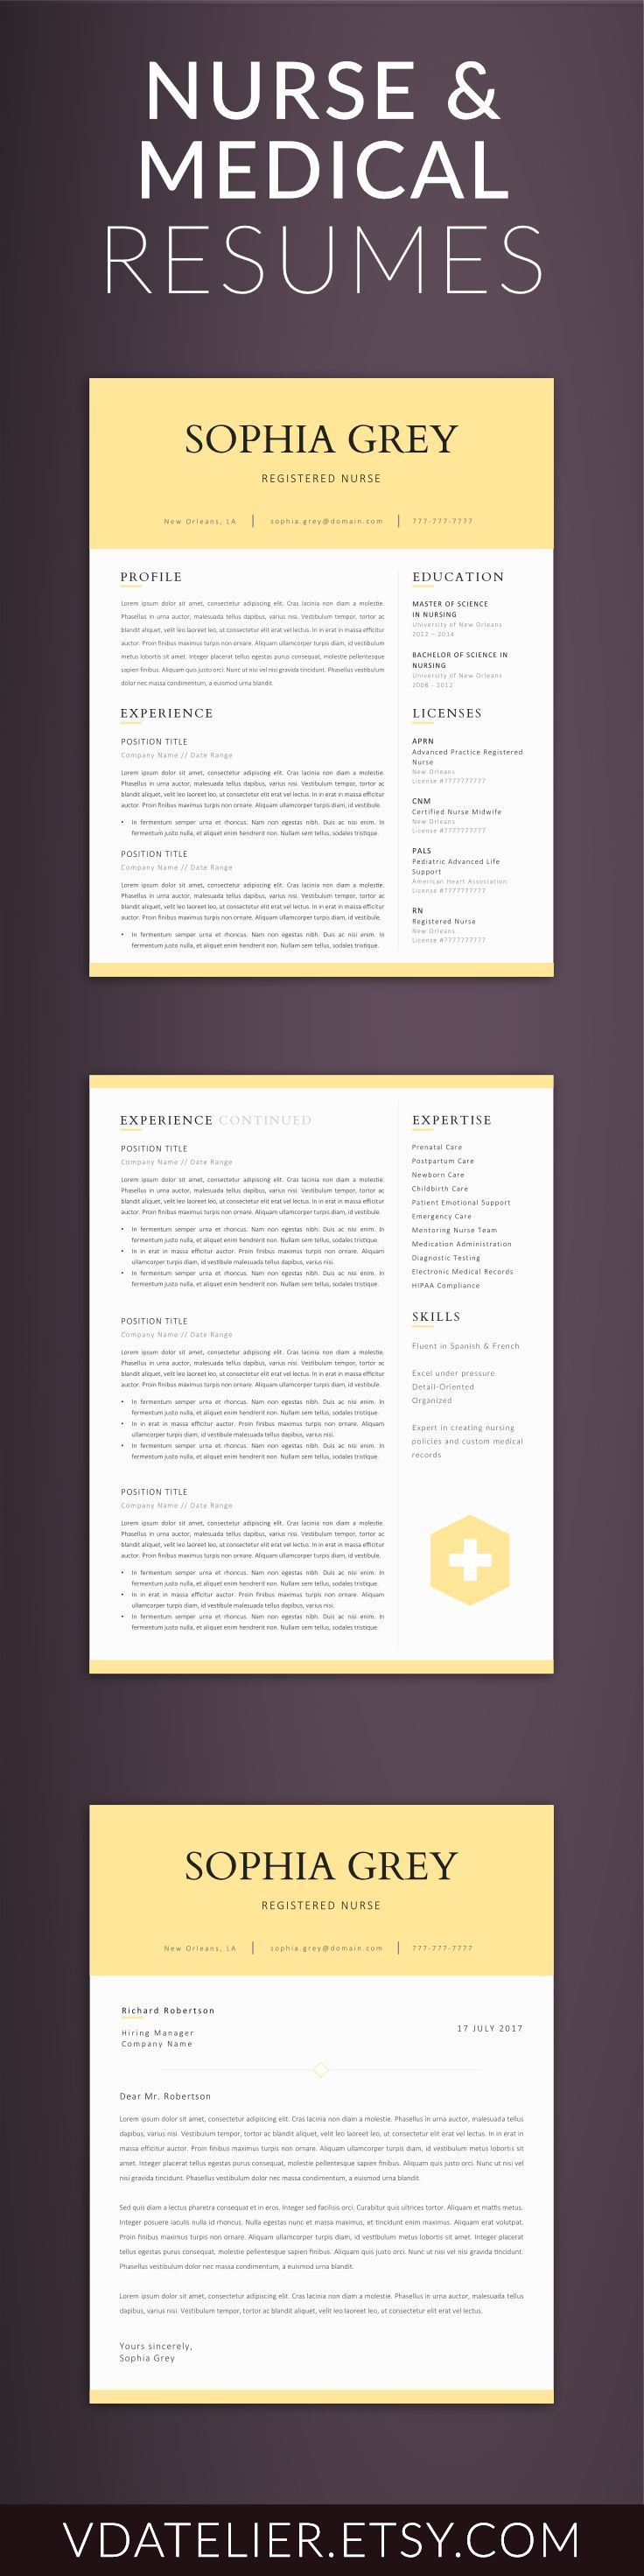 Doctor Resume Template for Word  Nurse Resume Template   Nurse CV     example of a nurse resume NURSE resume template Medical resume Nursing  resume Rn resume